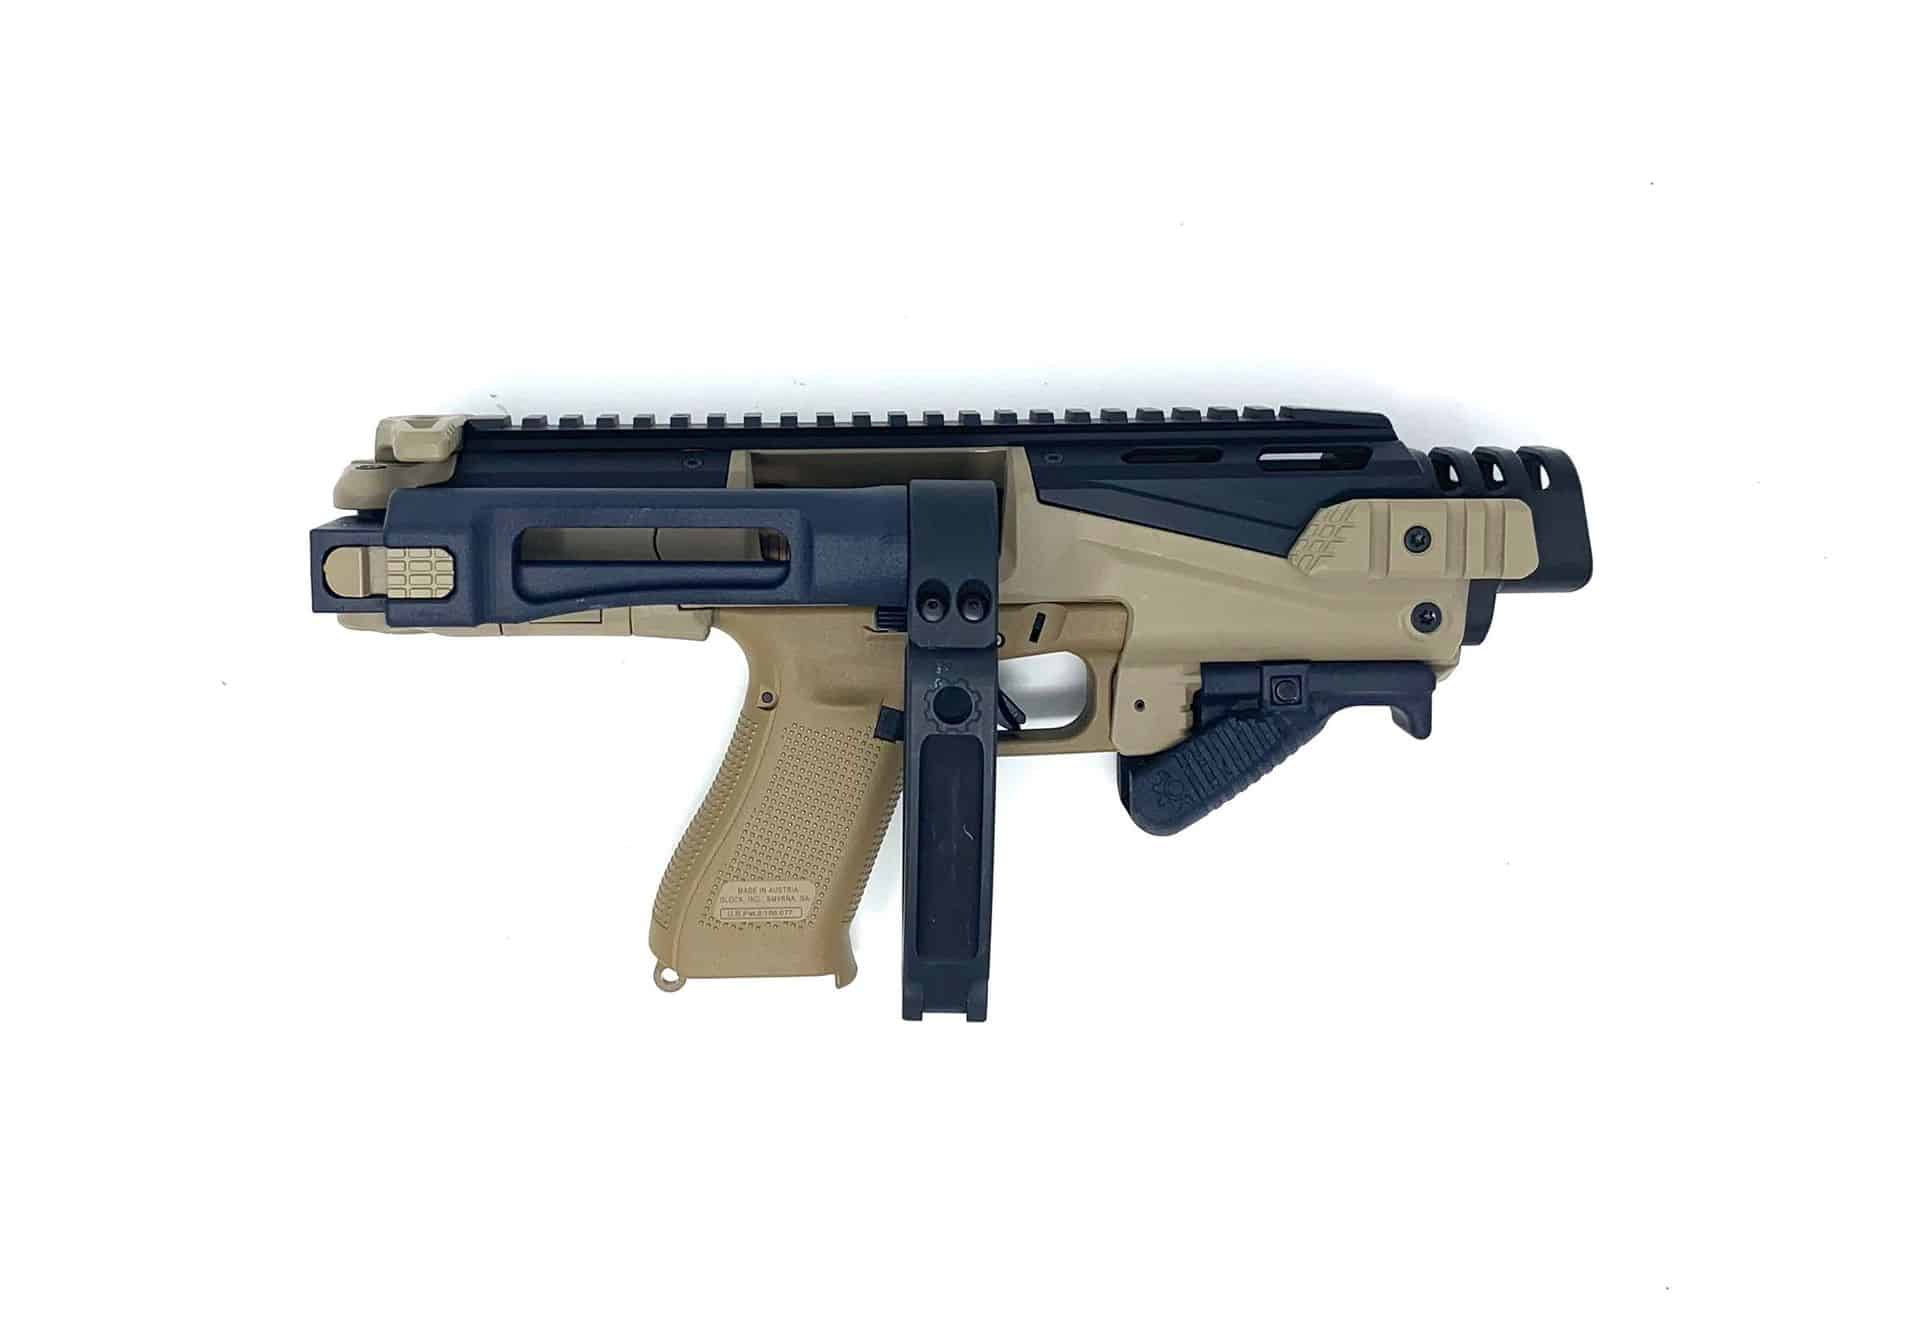 000BS-ZFI PDW Ultimate Truck Gun - NON NFA KPOS Scout with Tailhook & folding angled foregrip w/ safety